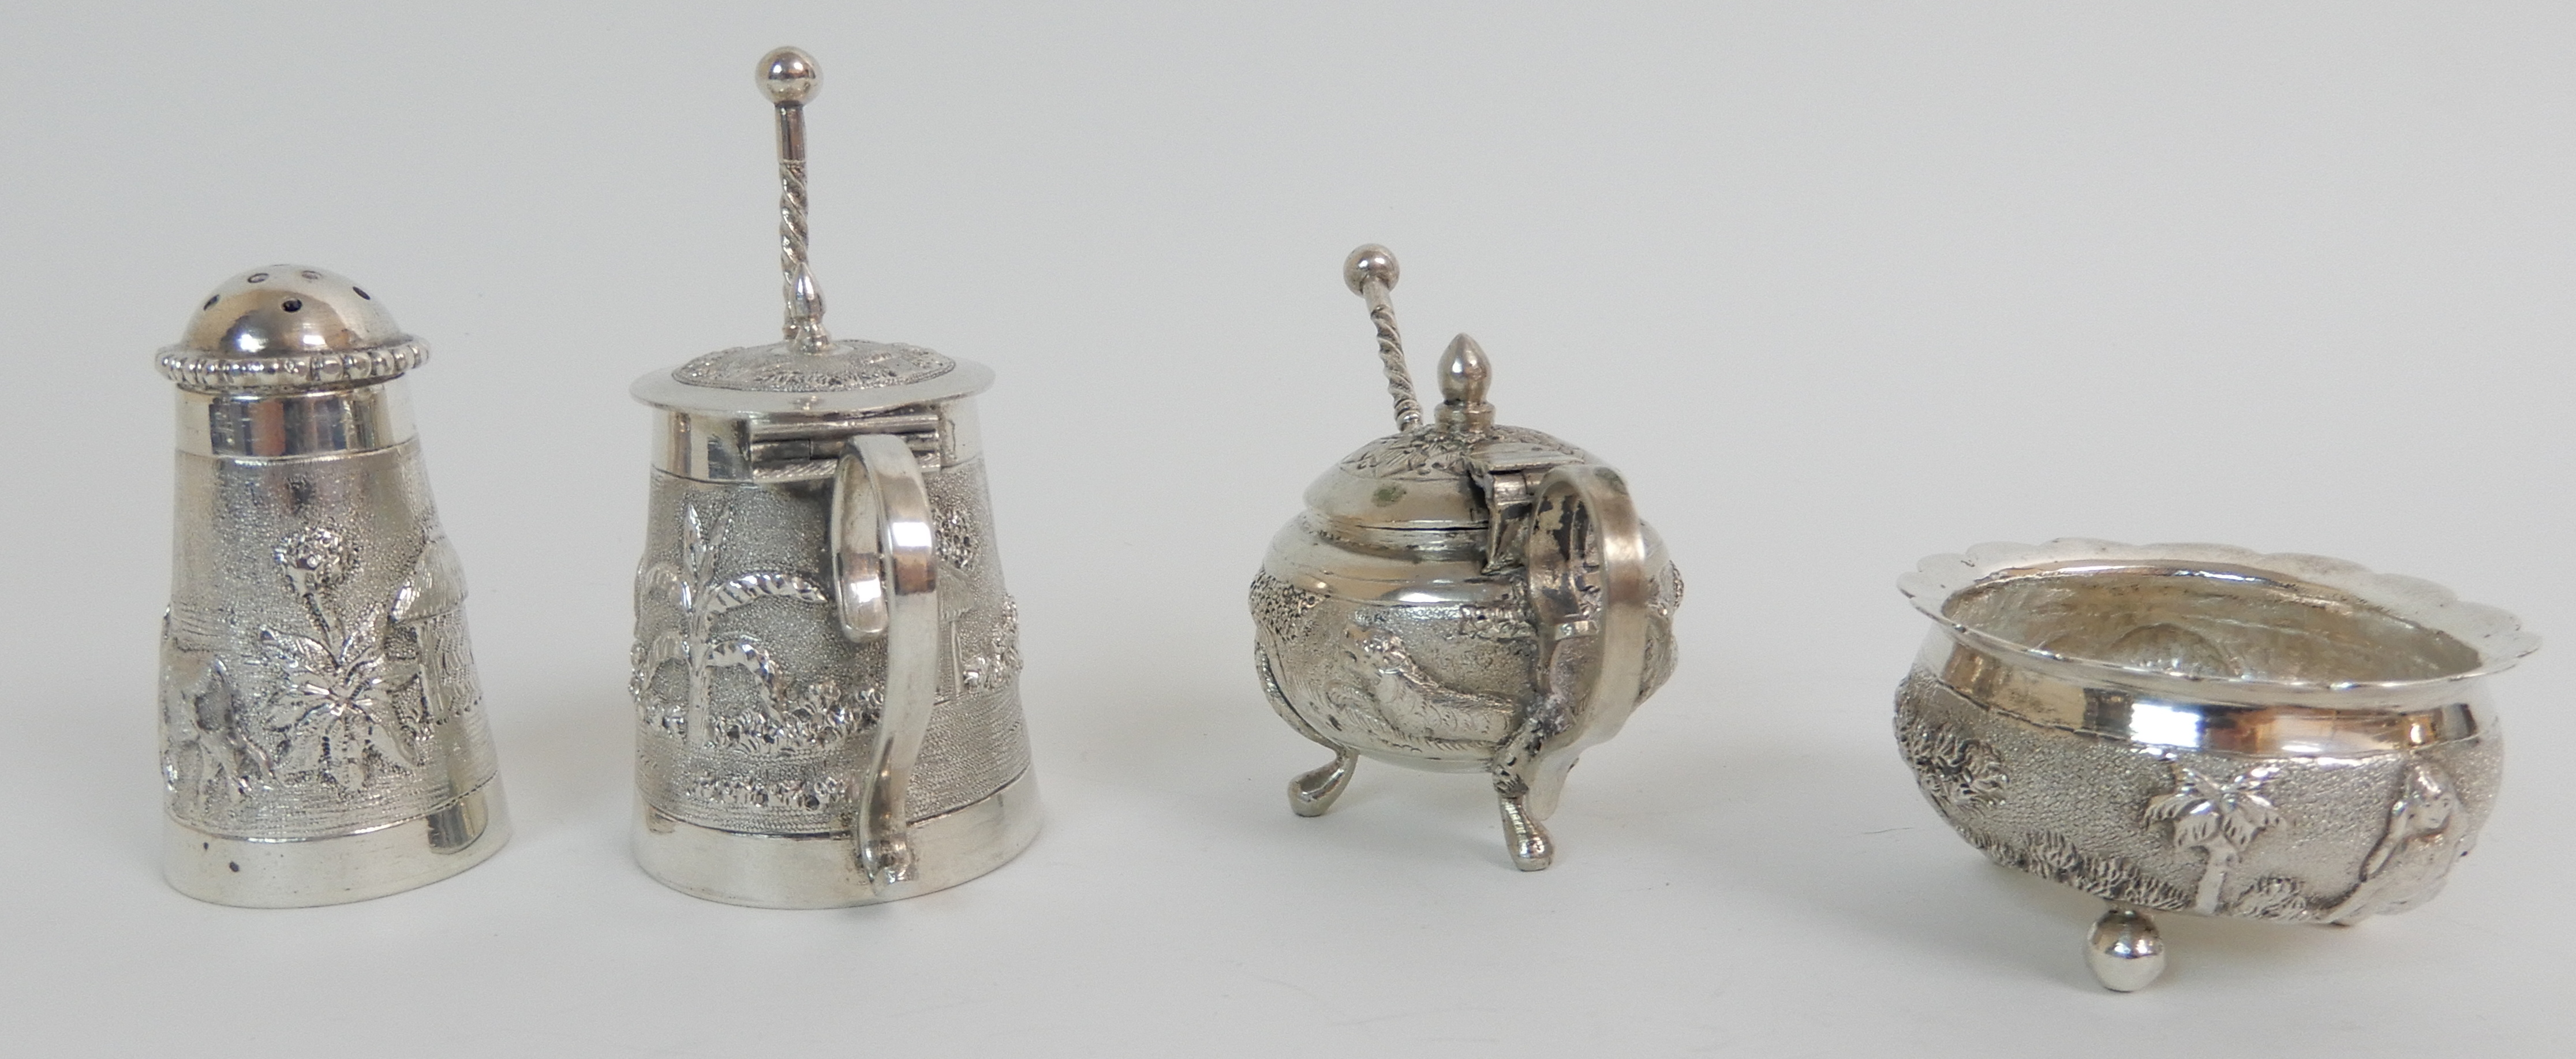 Lot 135 - FOUR BURMESE EXPORT SILVER CONDIMENTS comprising two mustard pots, a salt and a pepperette with